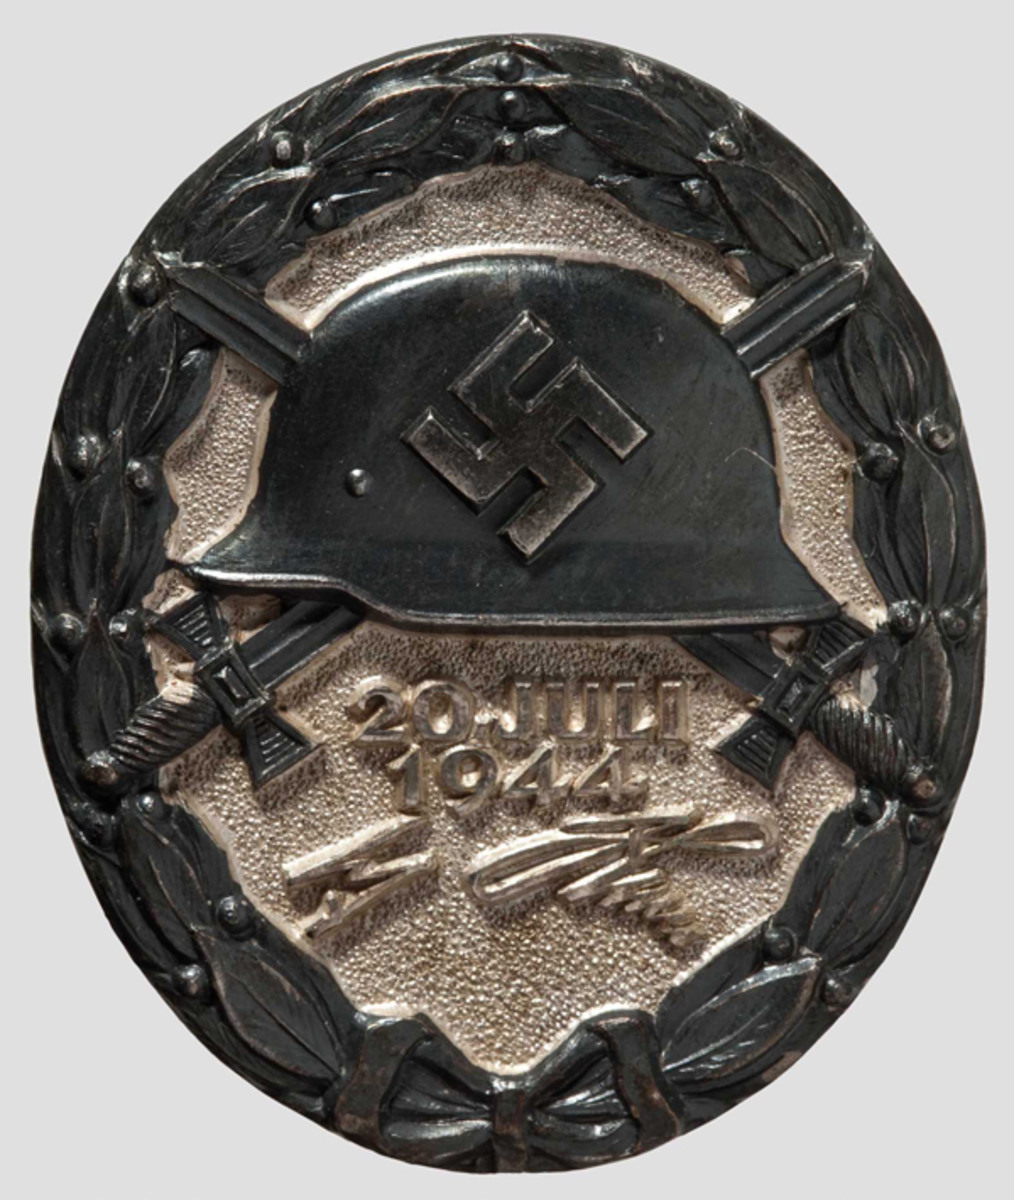 """After an assassination attempt failed in 1944, Hitler ordered the production and issue of a specialized Wound Badge to those who were injured during the attack. The """"20. Juli"""" Wound Badge was issued in all three grades."""